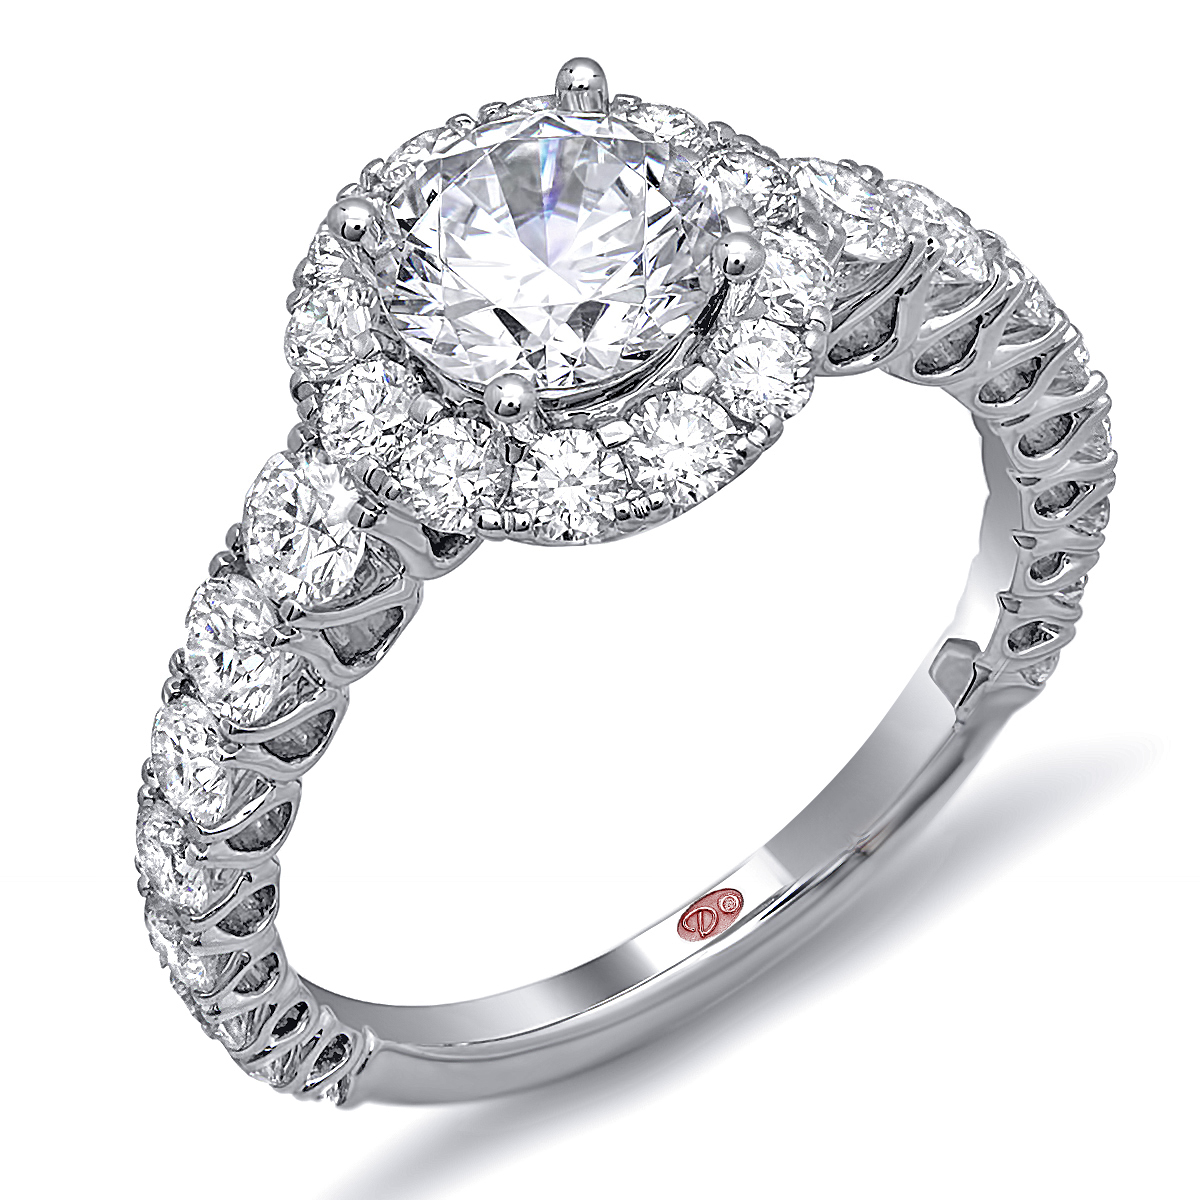 5c2b42b34 designer engagement rings in orlando | Demarco Bridal Jewelry ...